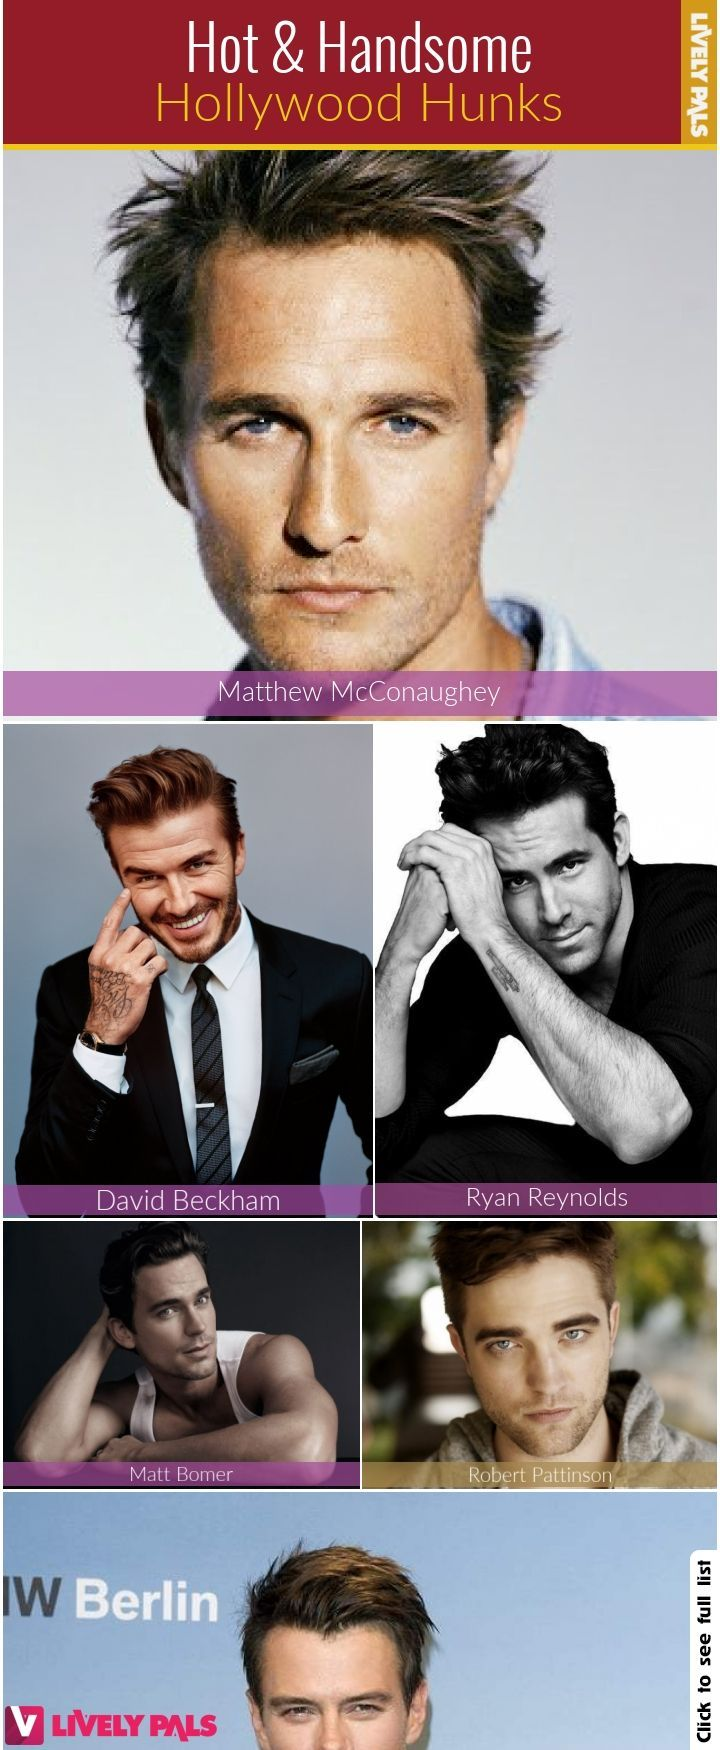 31 Hollywood Handsome Hunks Celebrities Hot Livelypals Handsome Matthew Mcconaughey Hollywood